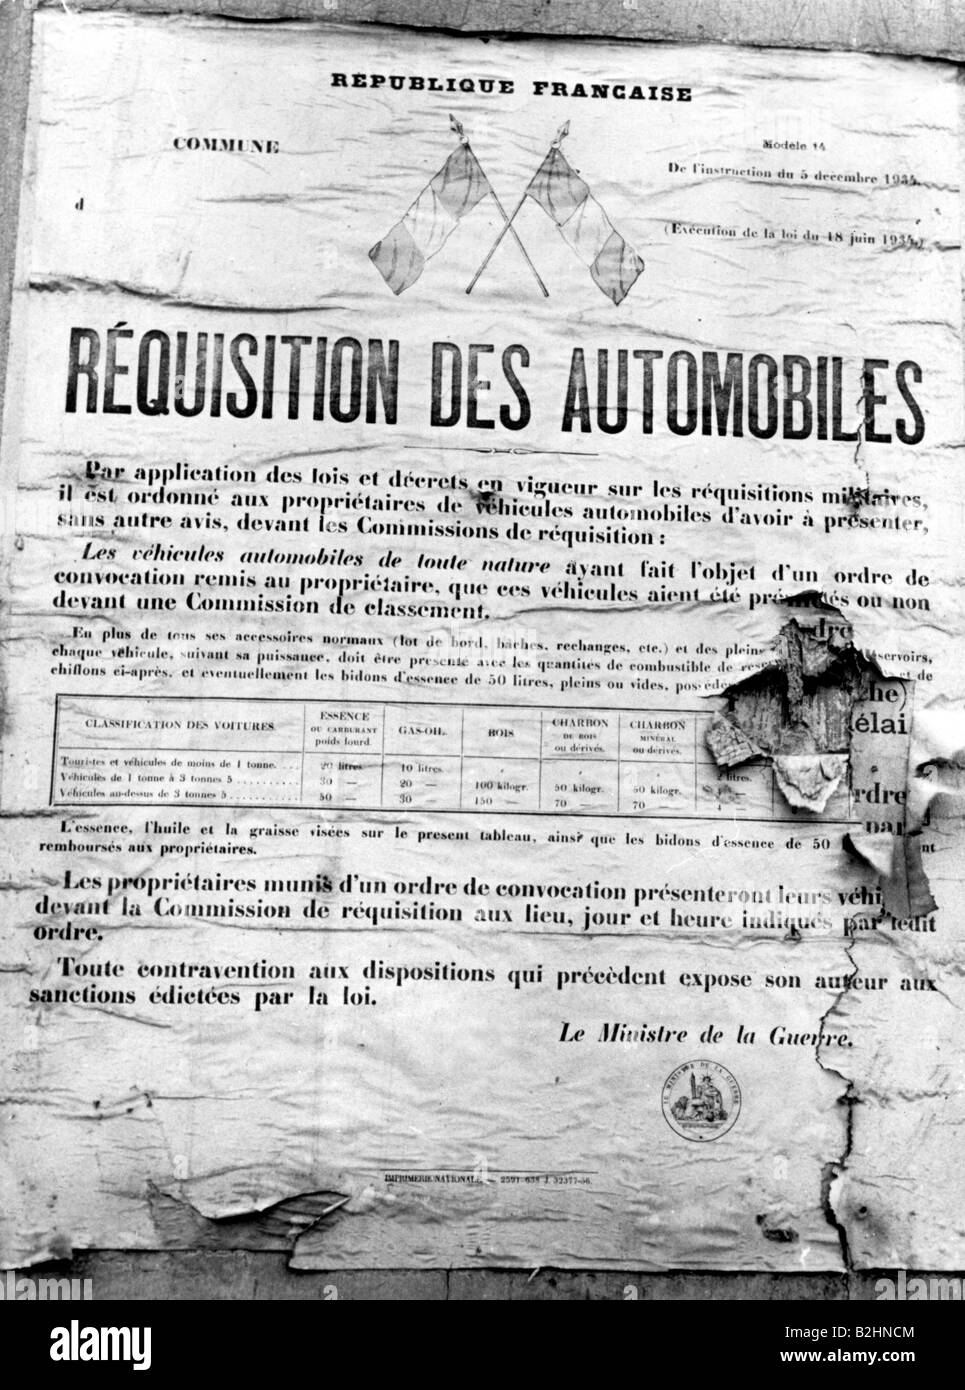 events, Second World War / WWII, France, poster, announcment of the requisition of motorcars by the French Ministry - Stock Image